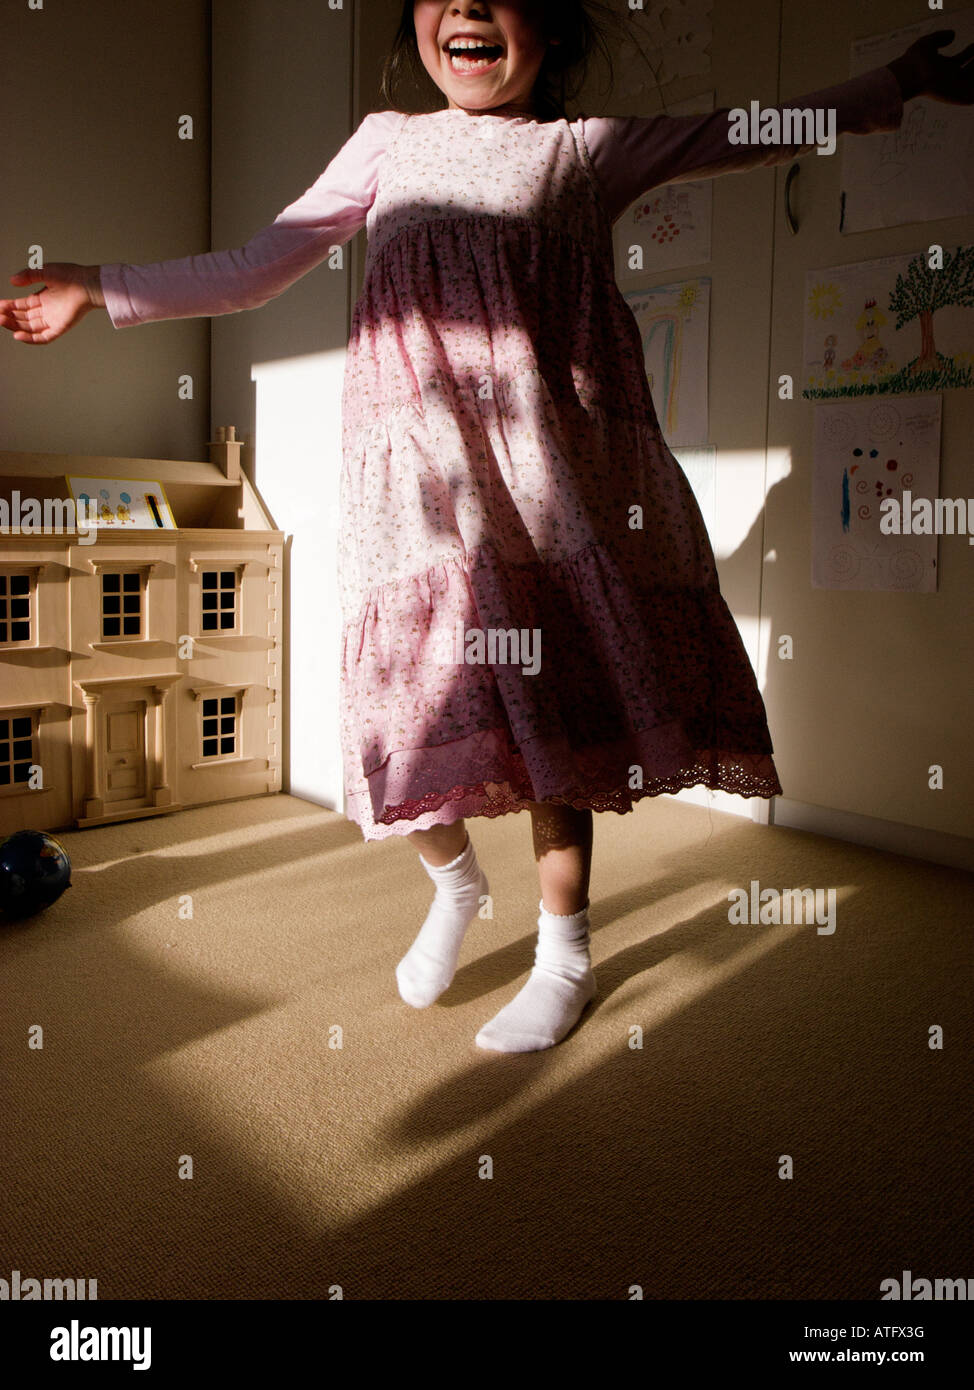 Child dancing at home - Stock Image